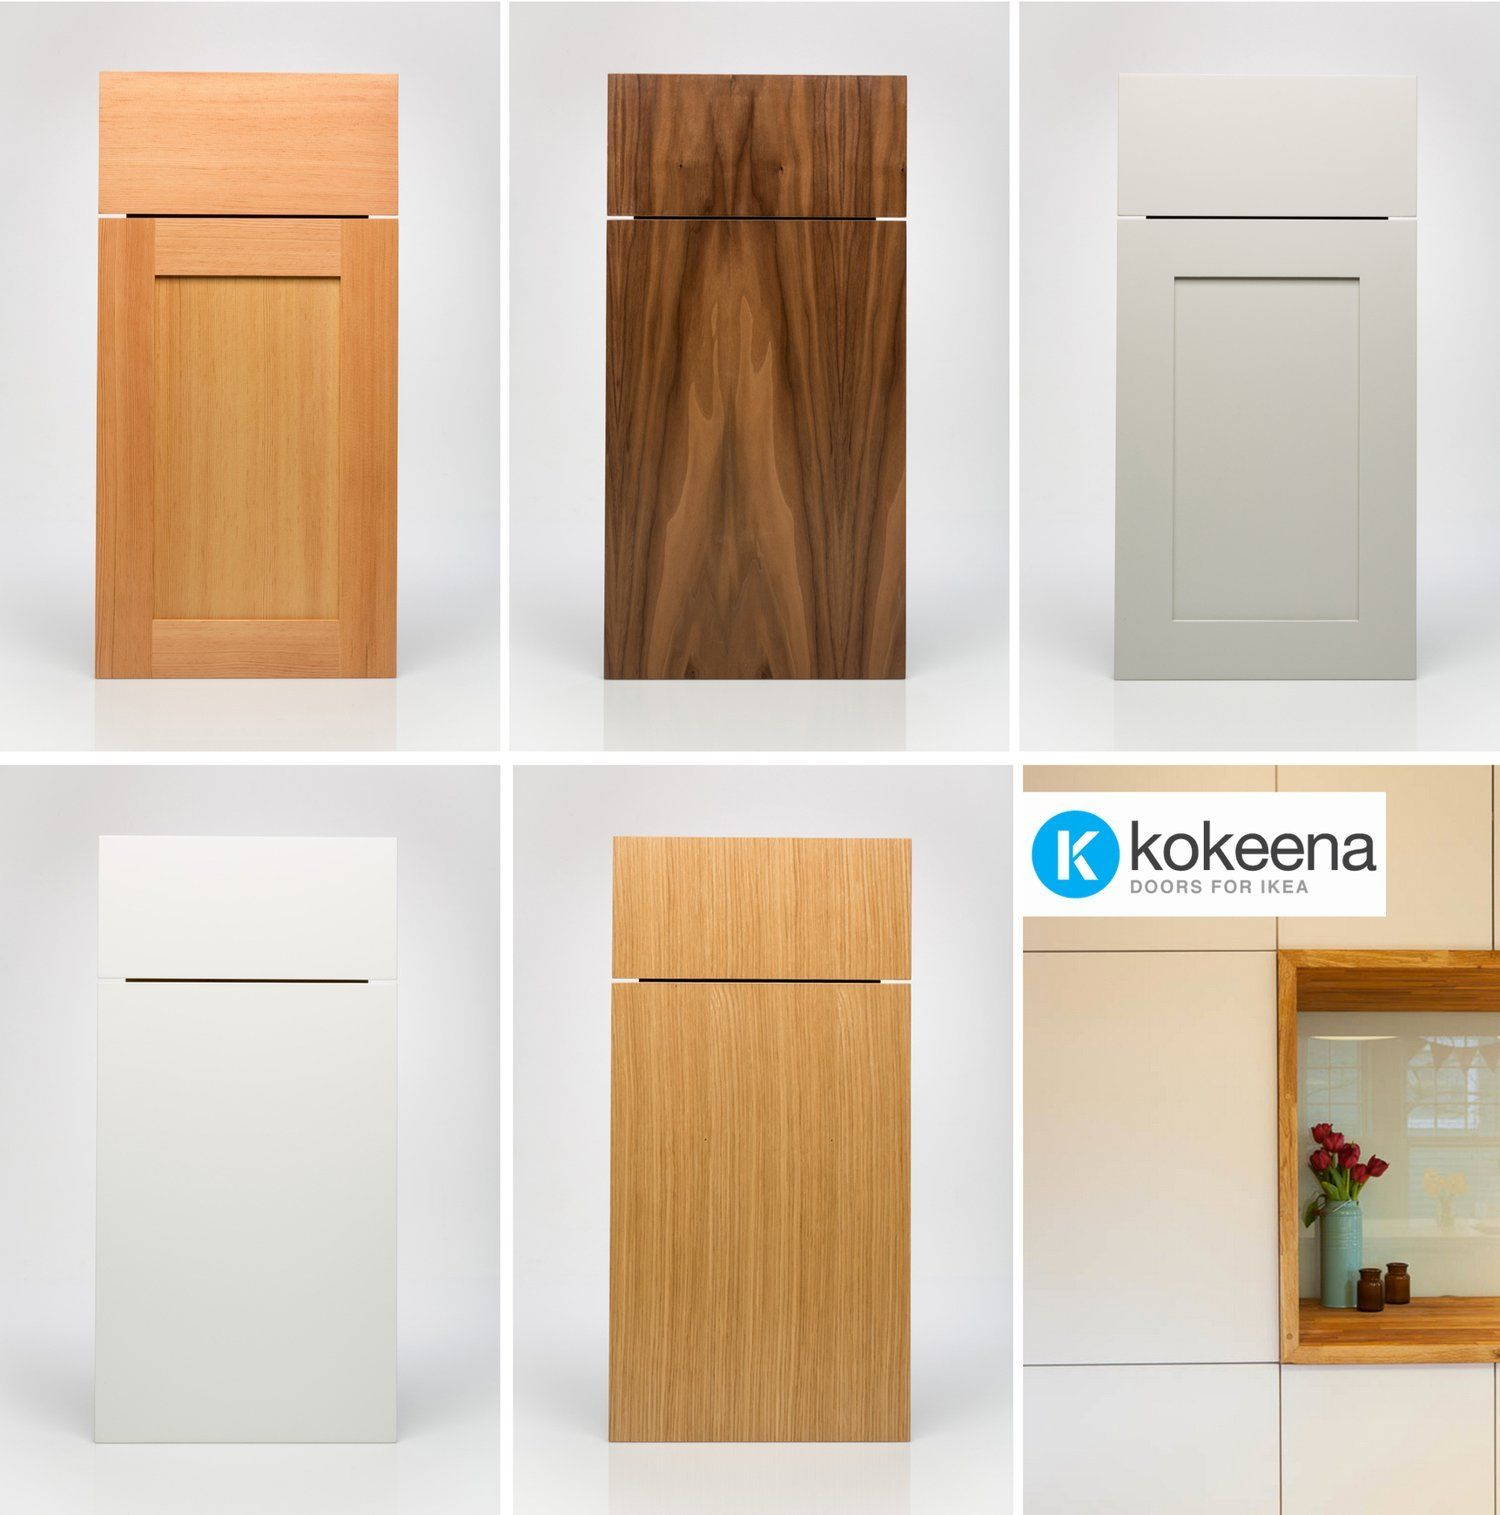 Kokeena Real Wood Ready Made Cabinet Doors For Ikea Akurum Kitchens Profile